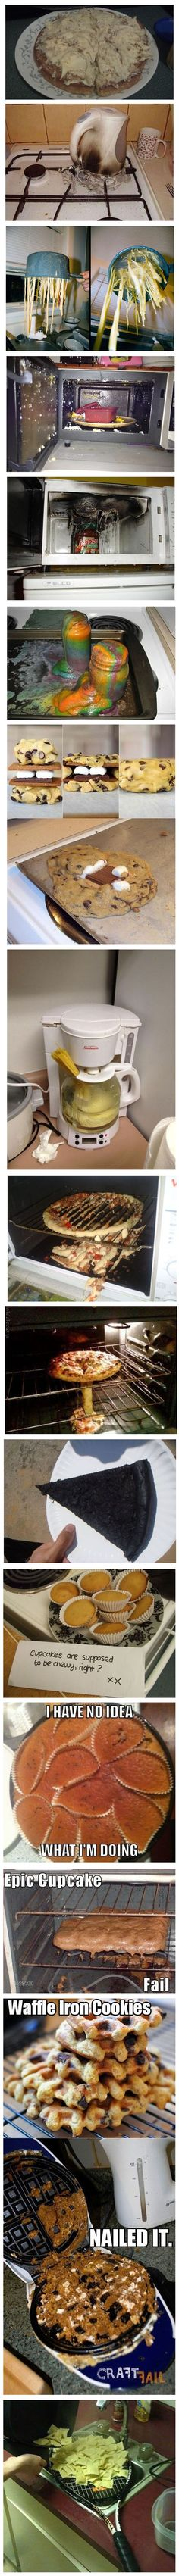 People who cook worse than you. This makes me feel better about my life...